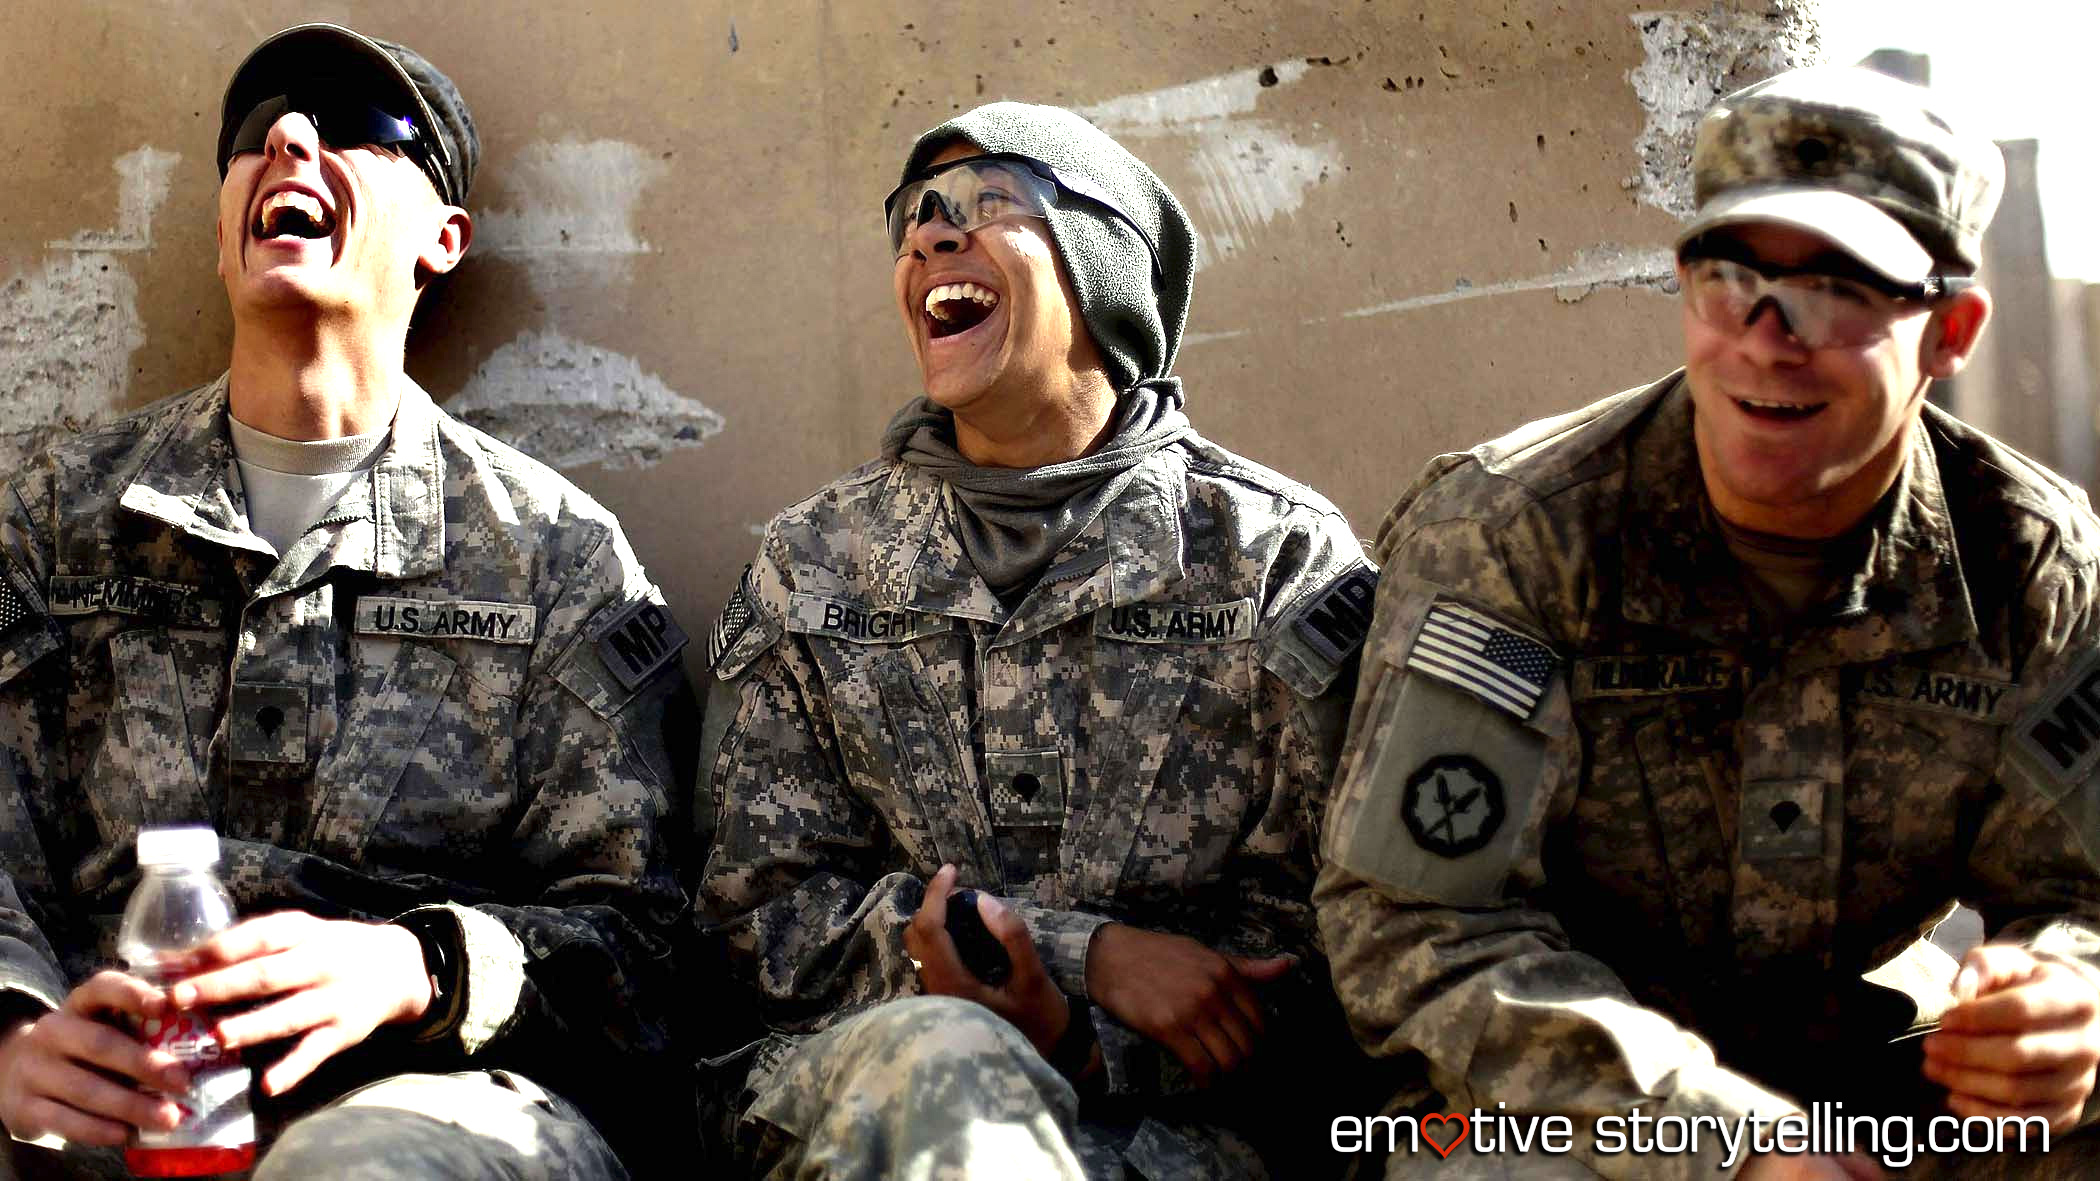 Soldiers laugh while preparing to depart from Iraq at Camp Adder, now known as Imam Ali Base, near Nasiriyah